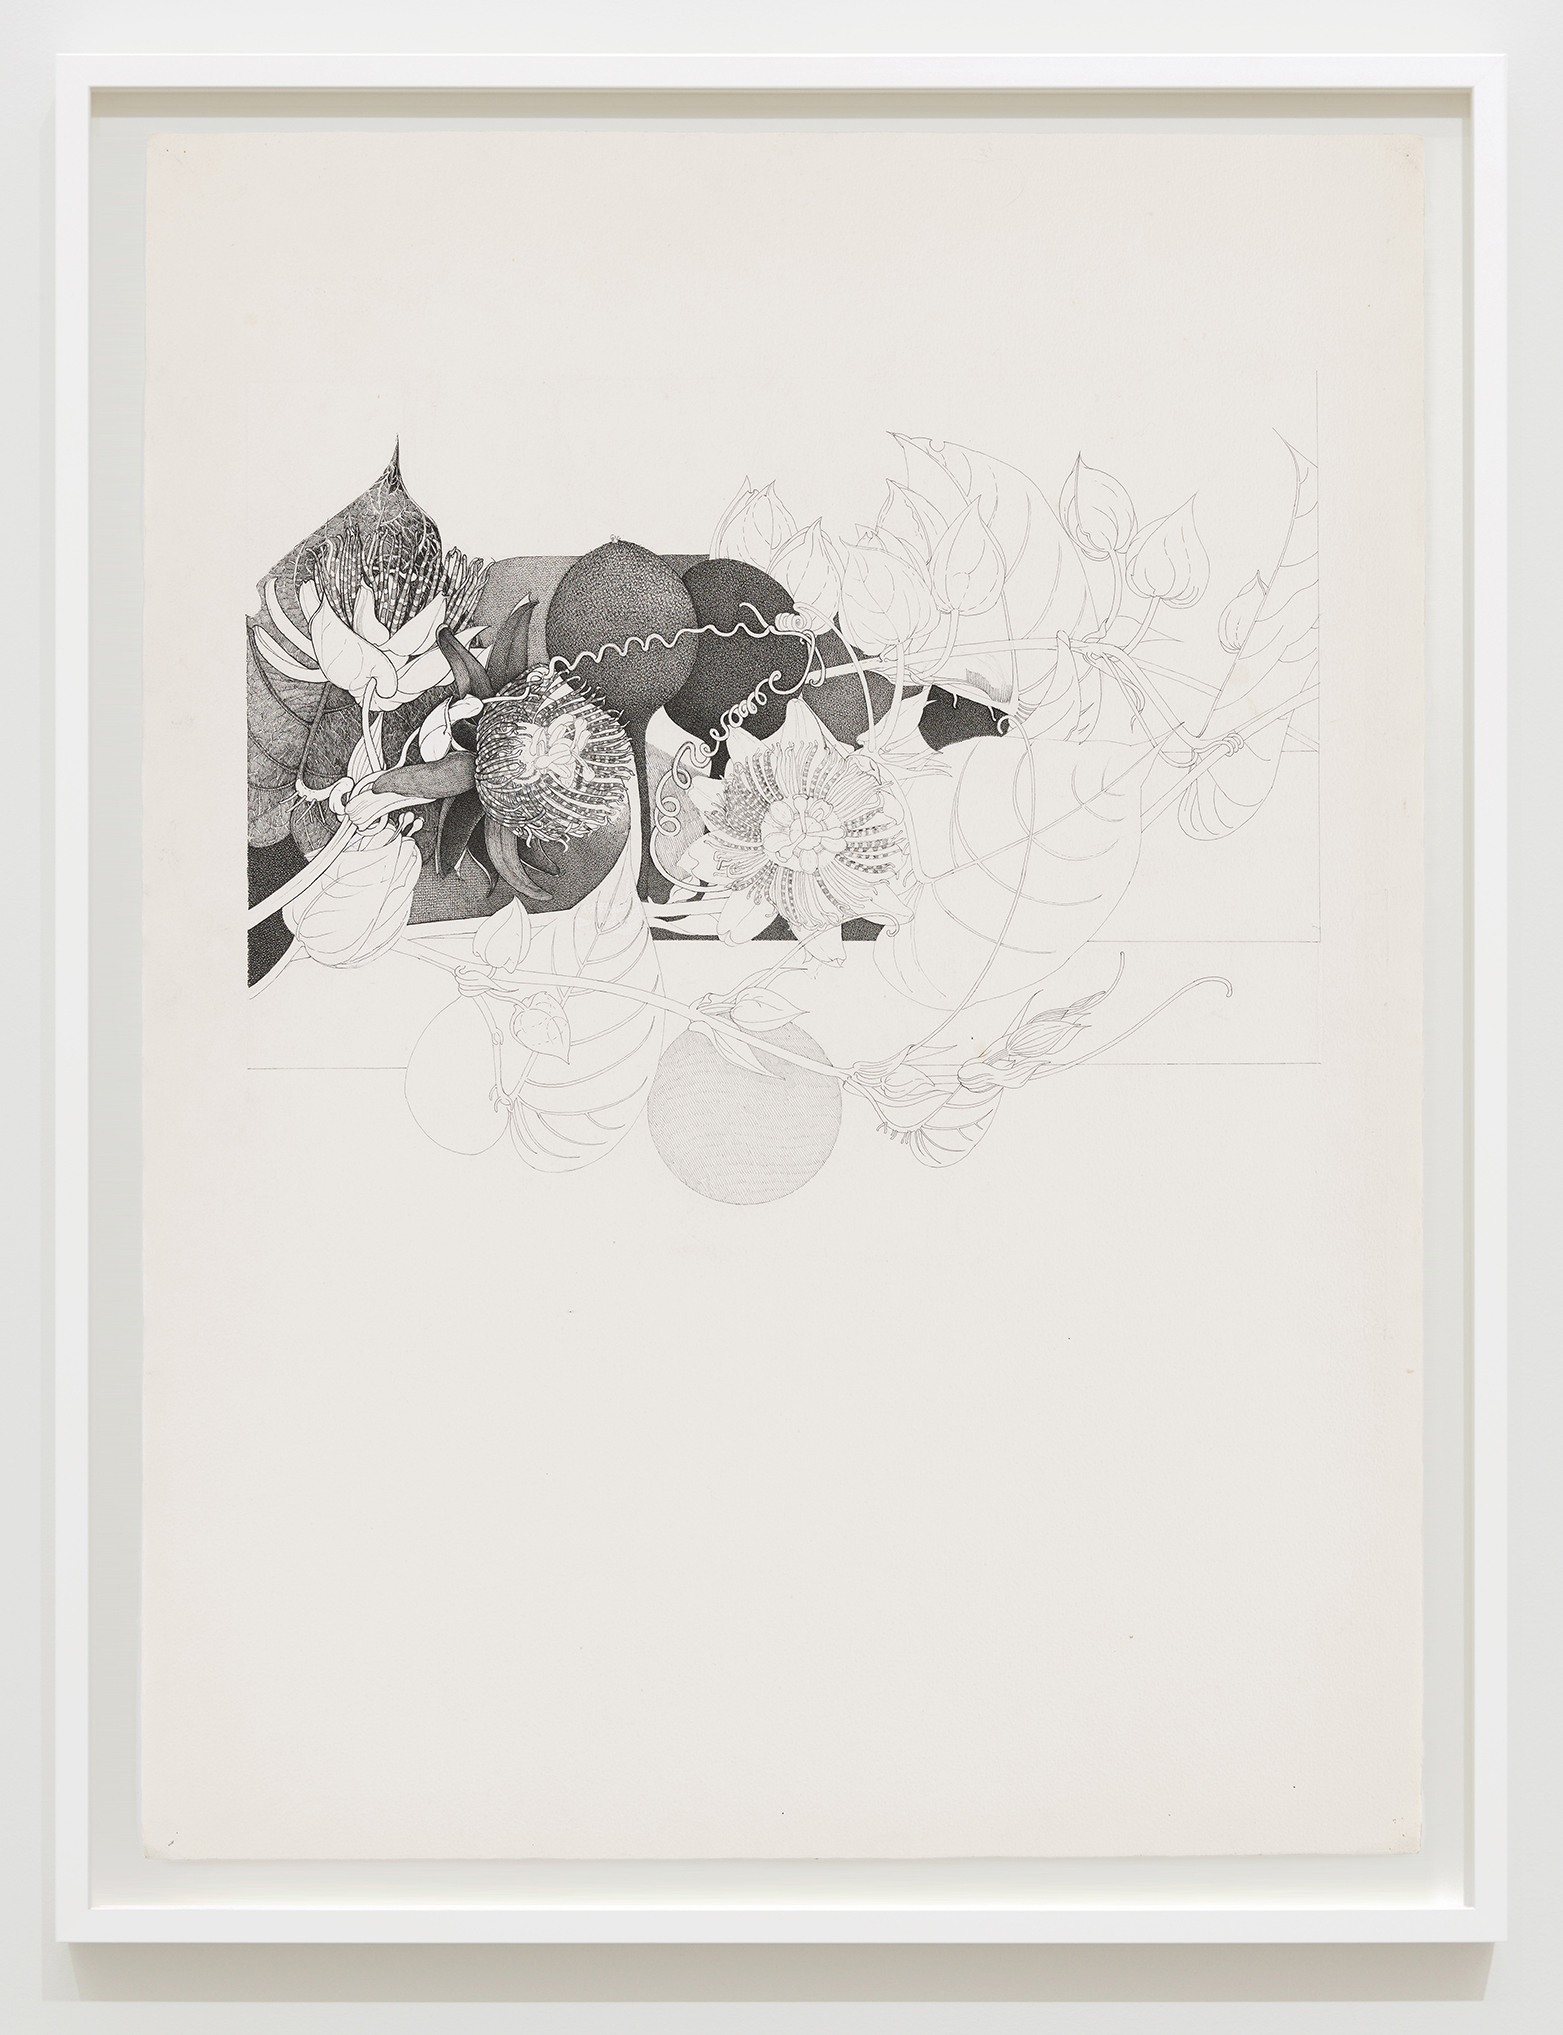 Charmian Johnson, not titled, unknown date, ink on paper, 34 x 26 in. (85 x 65 cm) by